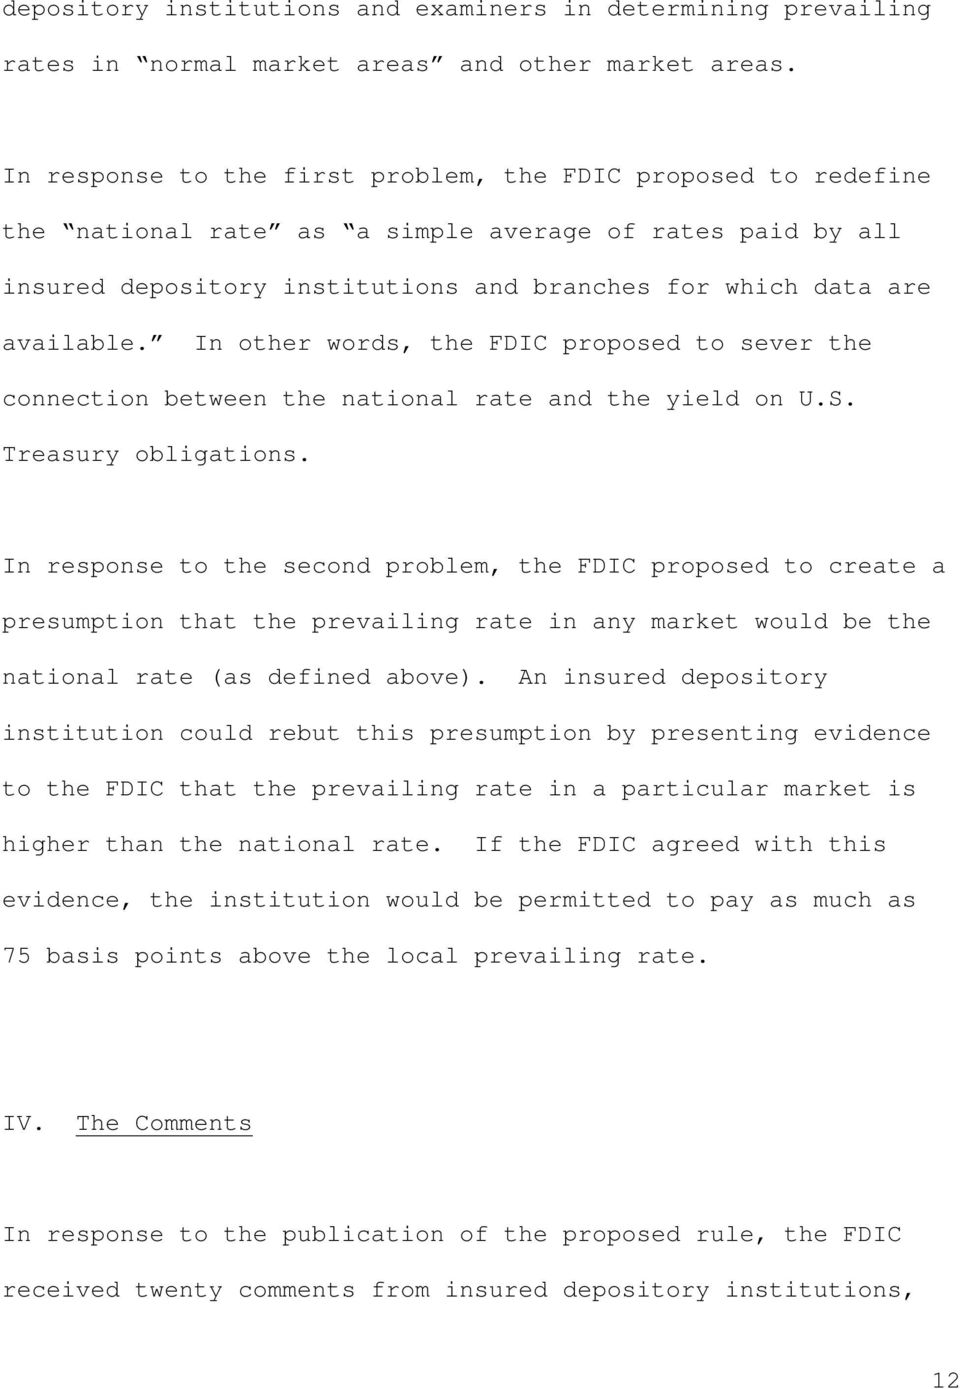 In other words, the FDIC proposed to sever the connection between the national rate and the yield on U.S. Treasury obligations.